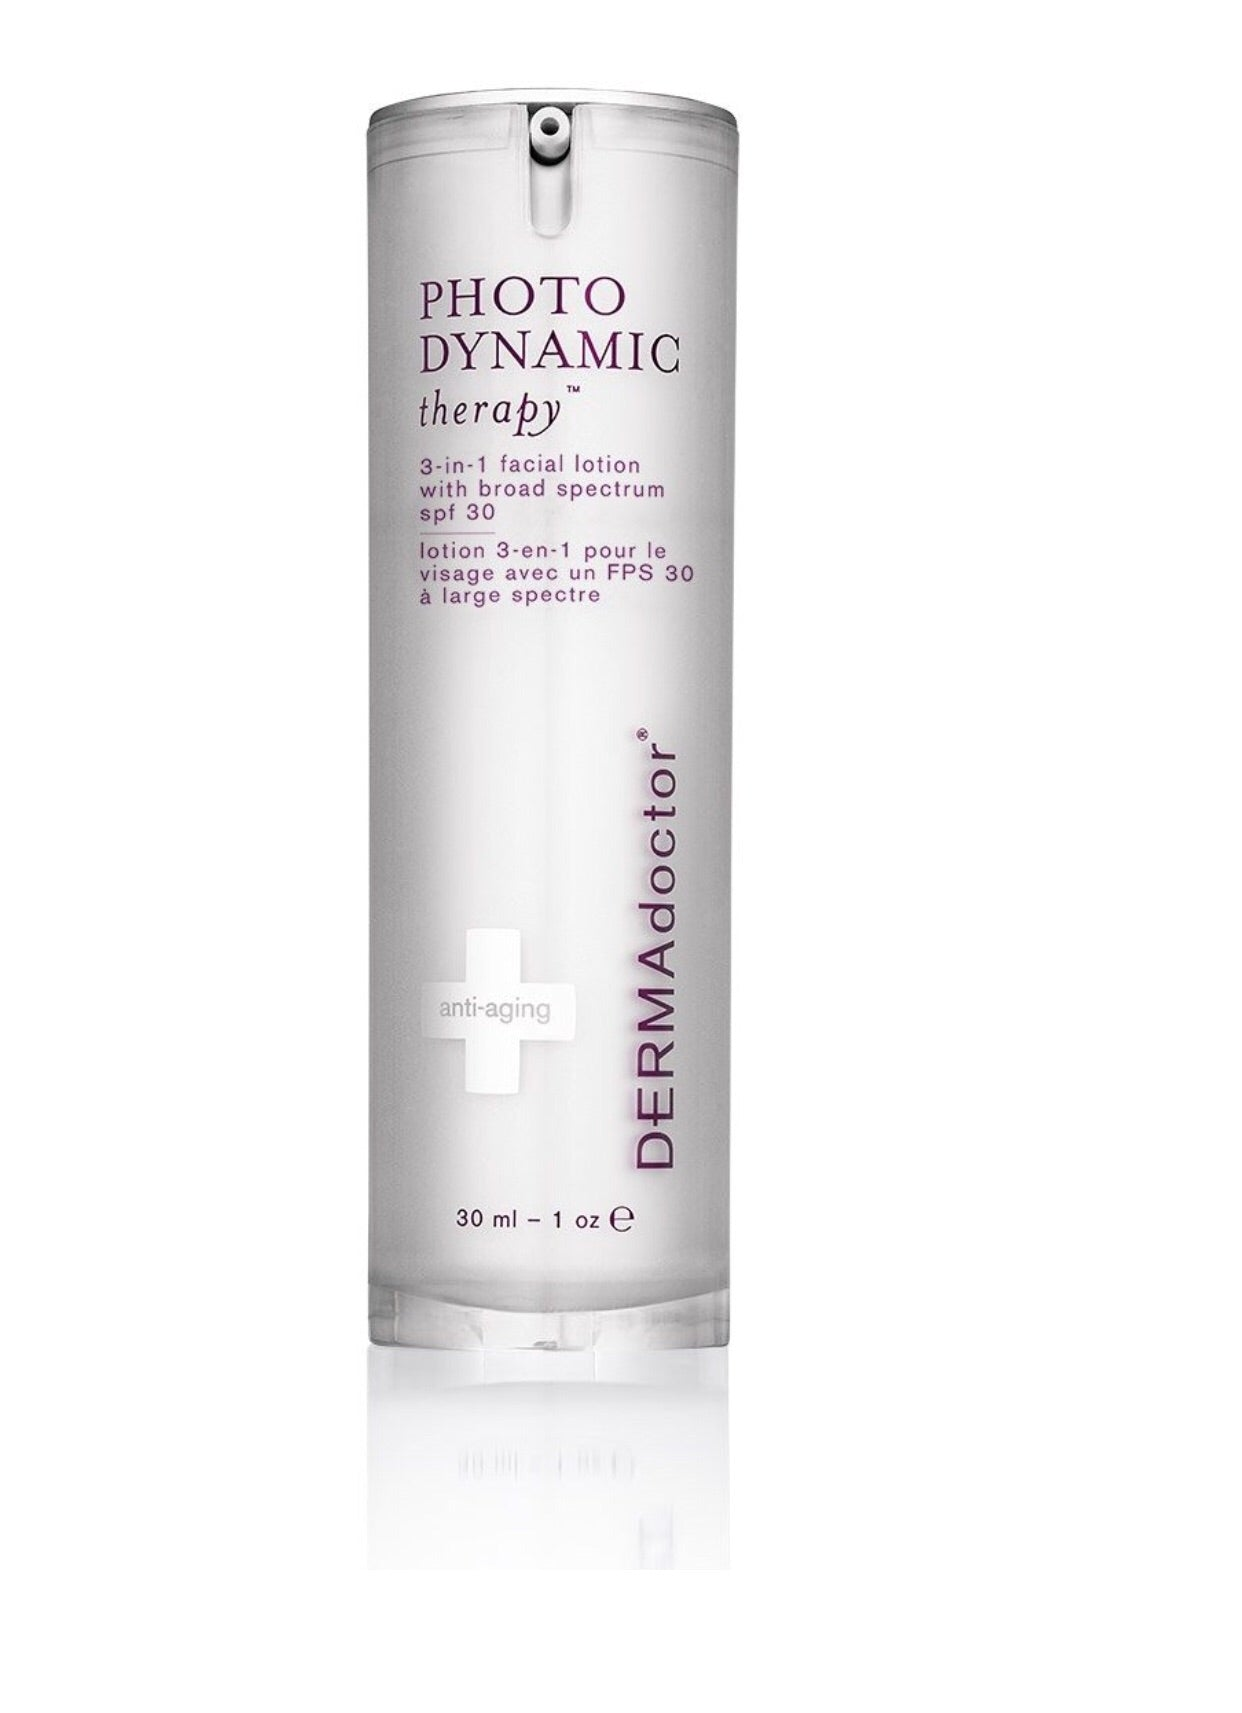 DERMAdoctor Photodynamic Therapy 3-in-1 facial lotion with broad spectrum spf 30, 30 ml - AmericanShop ByHanan